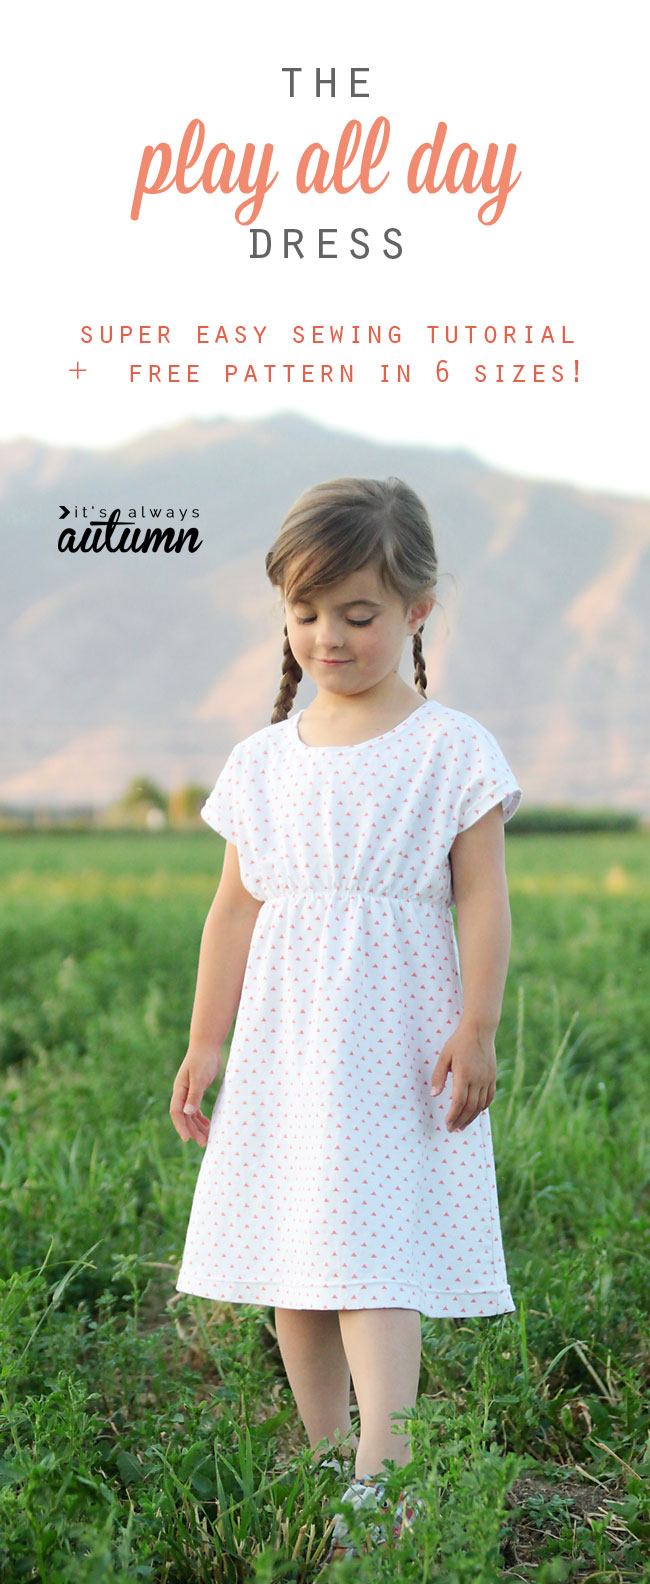 A little girl wearing the play all day dress made from a easy pdf sewing pattern